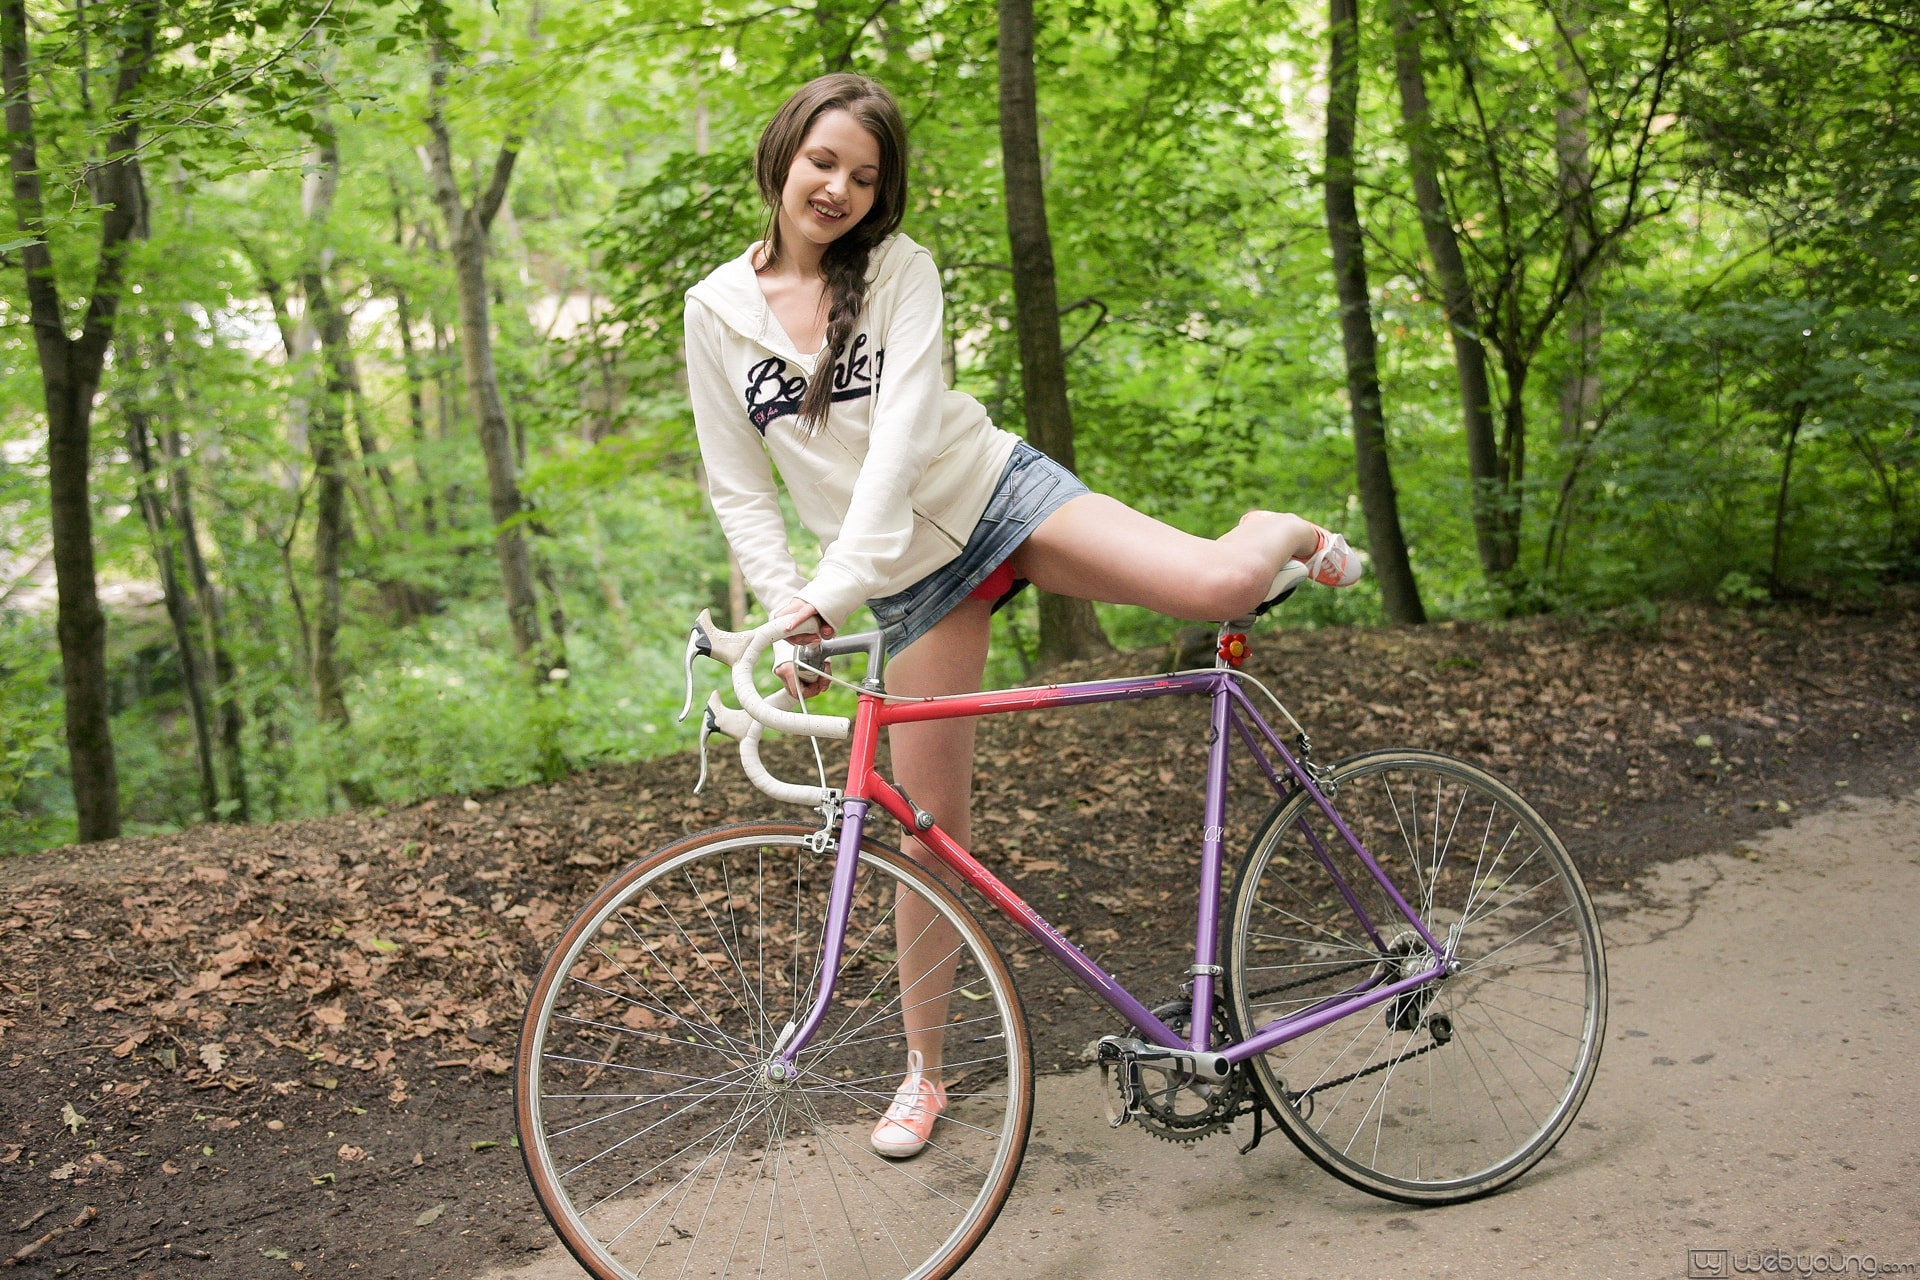 Bicycle anal porn pics, bicycle sex images